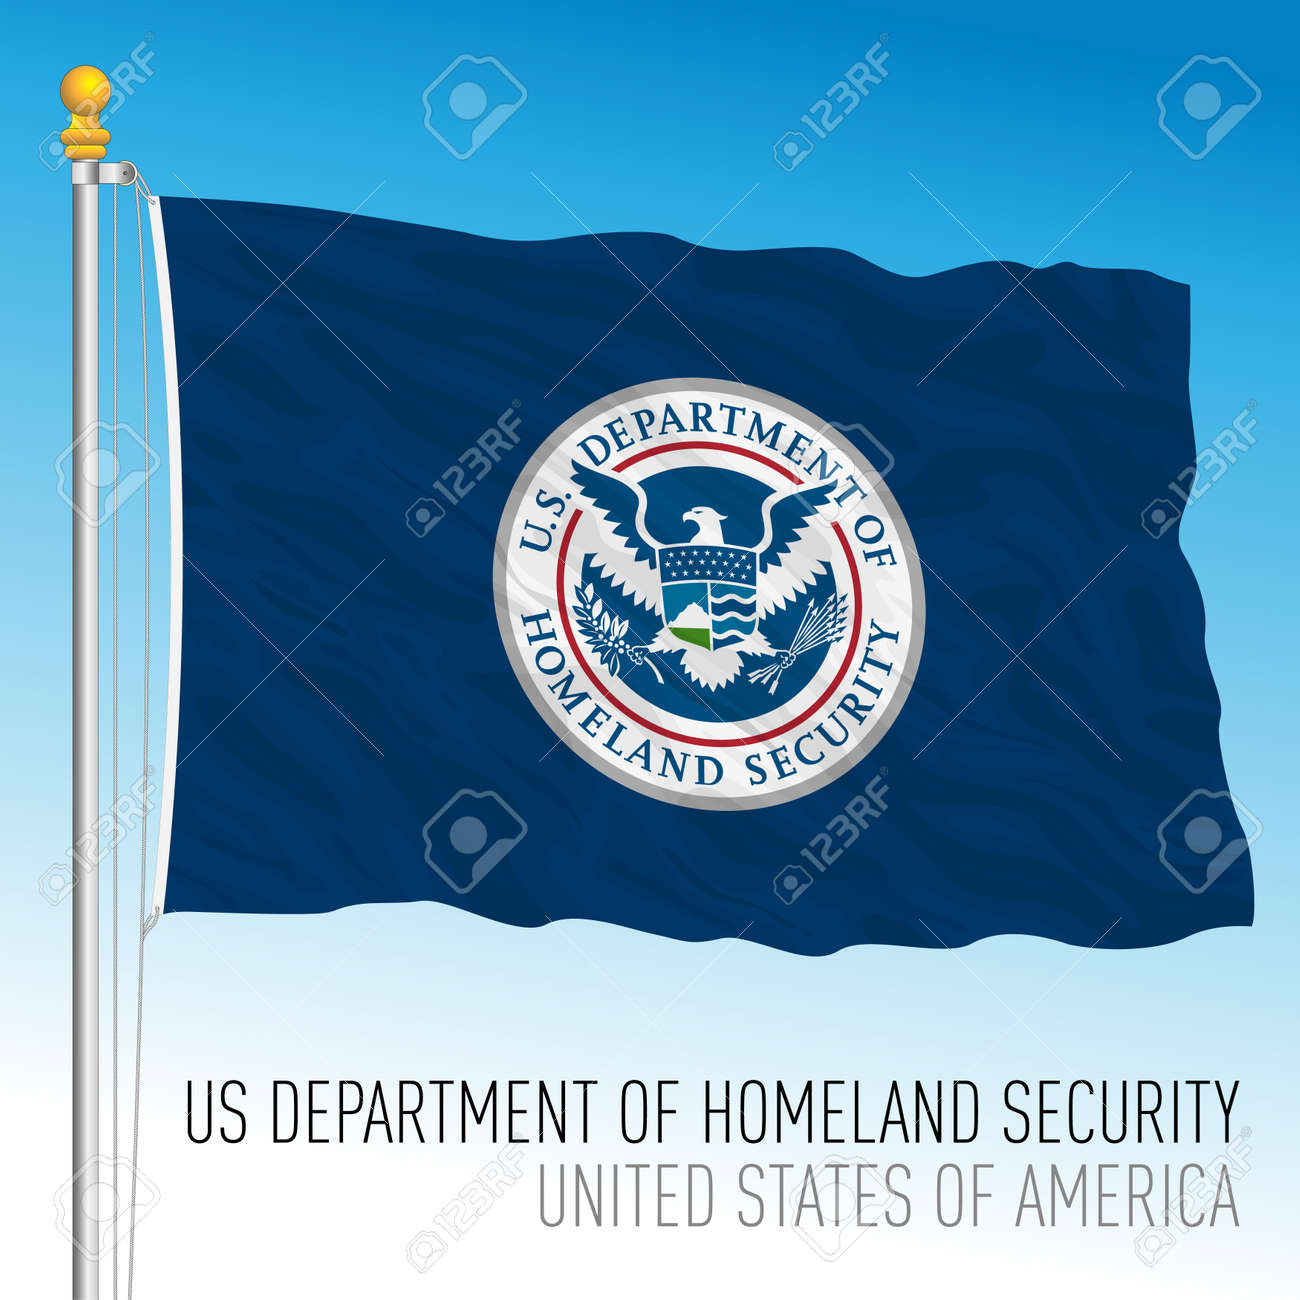 US Department of Homeland security flag, United States of America, vector illustration - 172982035